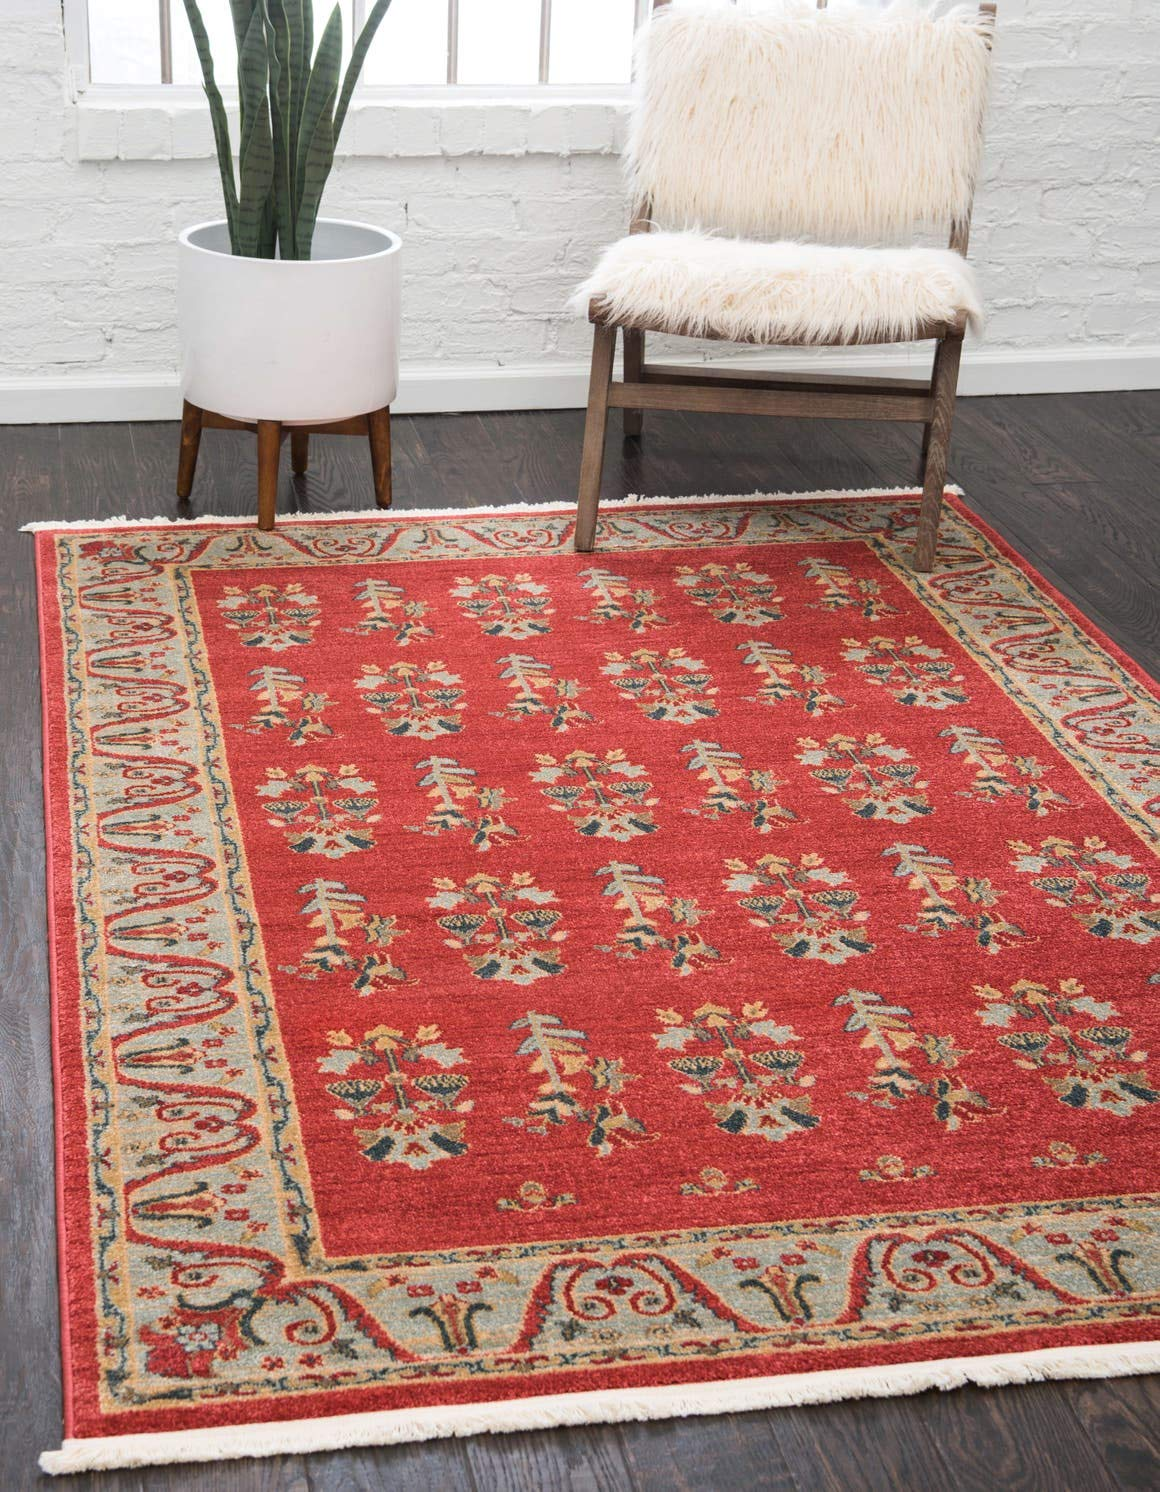 Unique Loom Fars Collection Tribal Modern Casual Red Area Rug 6 0 x 9 0